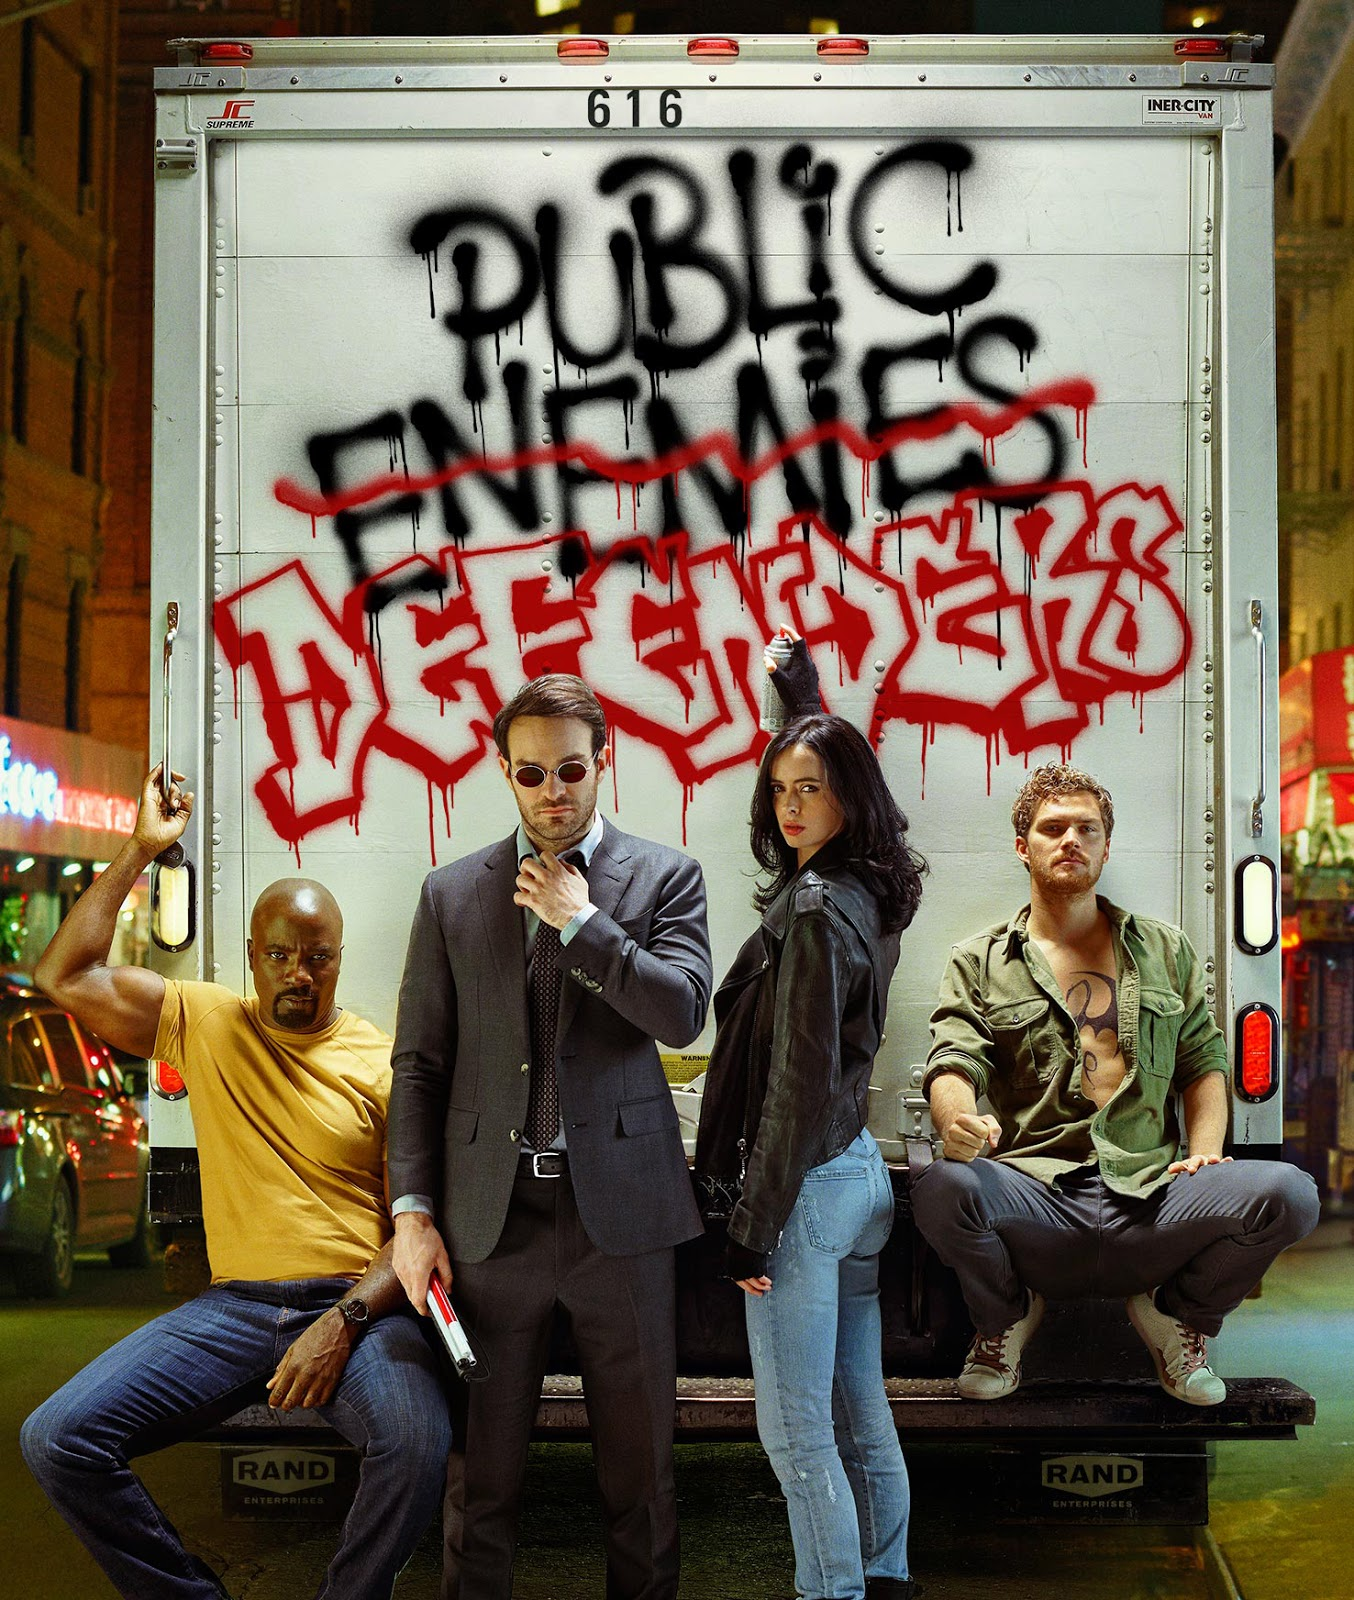 The Defenders by Netflix